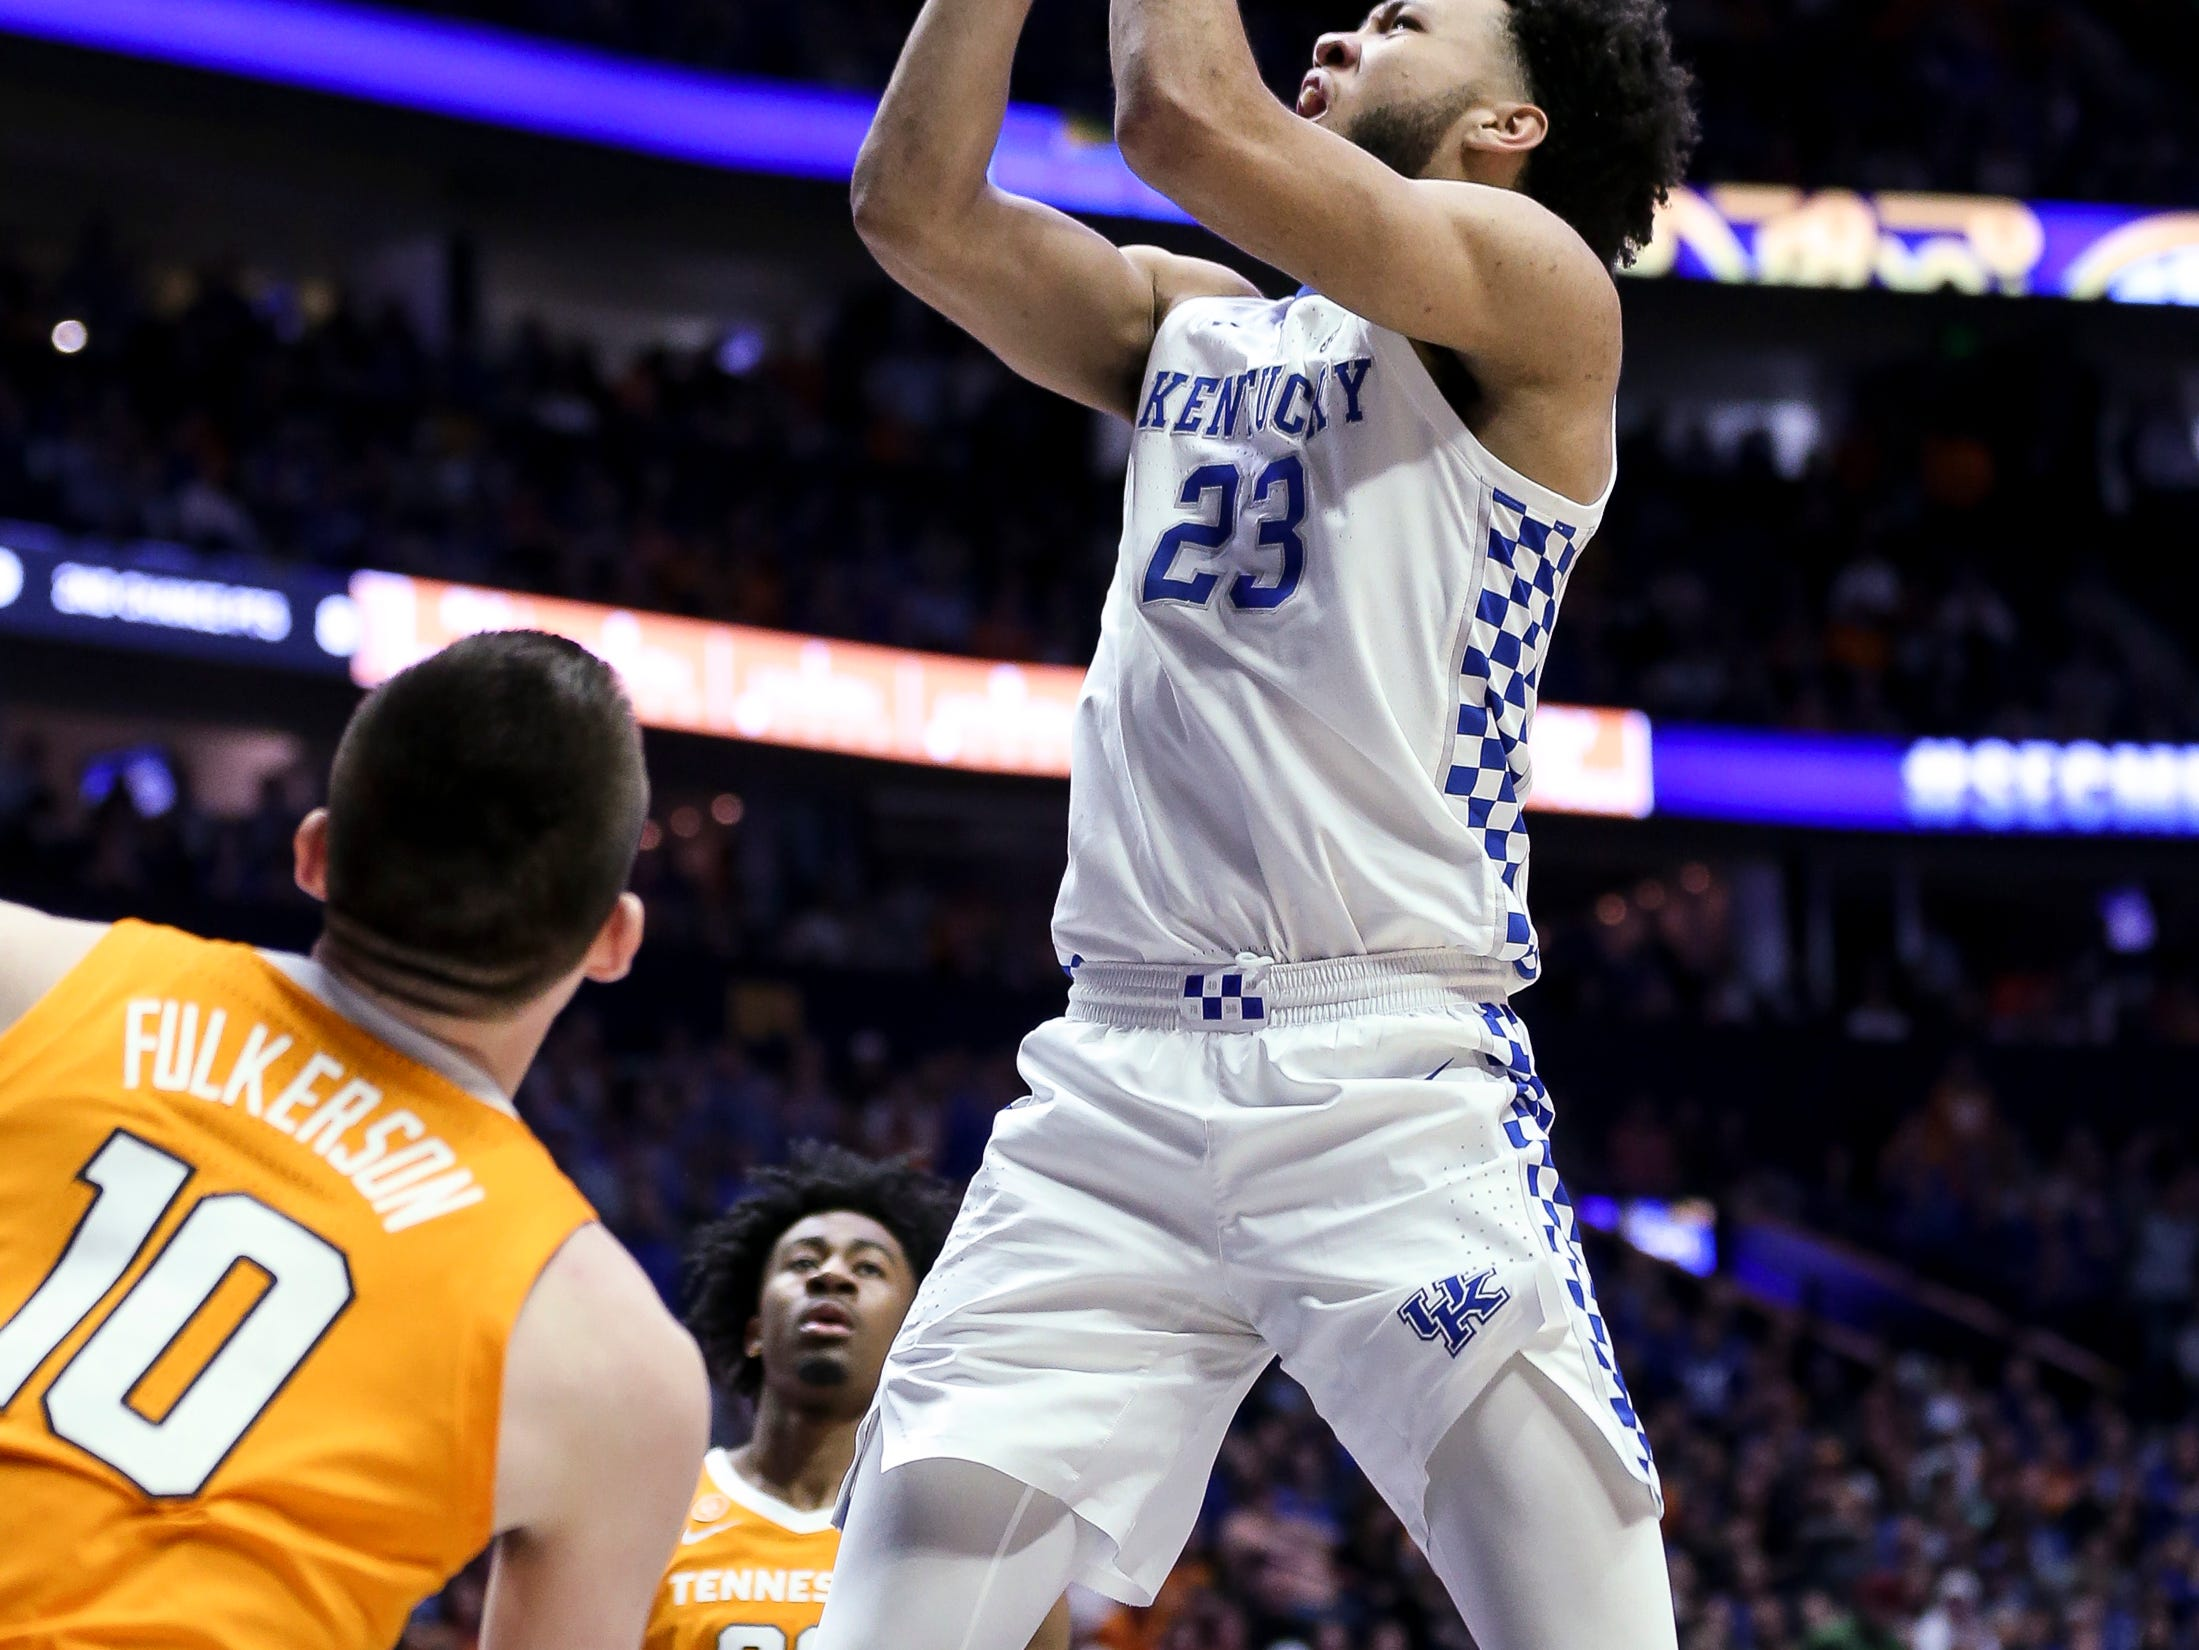 Kentucky forward EJ Montgomery (23) shoots against Tennessee during the second half of the SEC Men's Basketball Tournament semifinal game at Bridgestone Arena in Nashville, Tenn., Saturday, March 16, 2019.